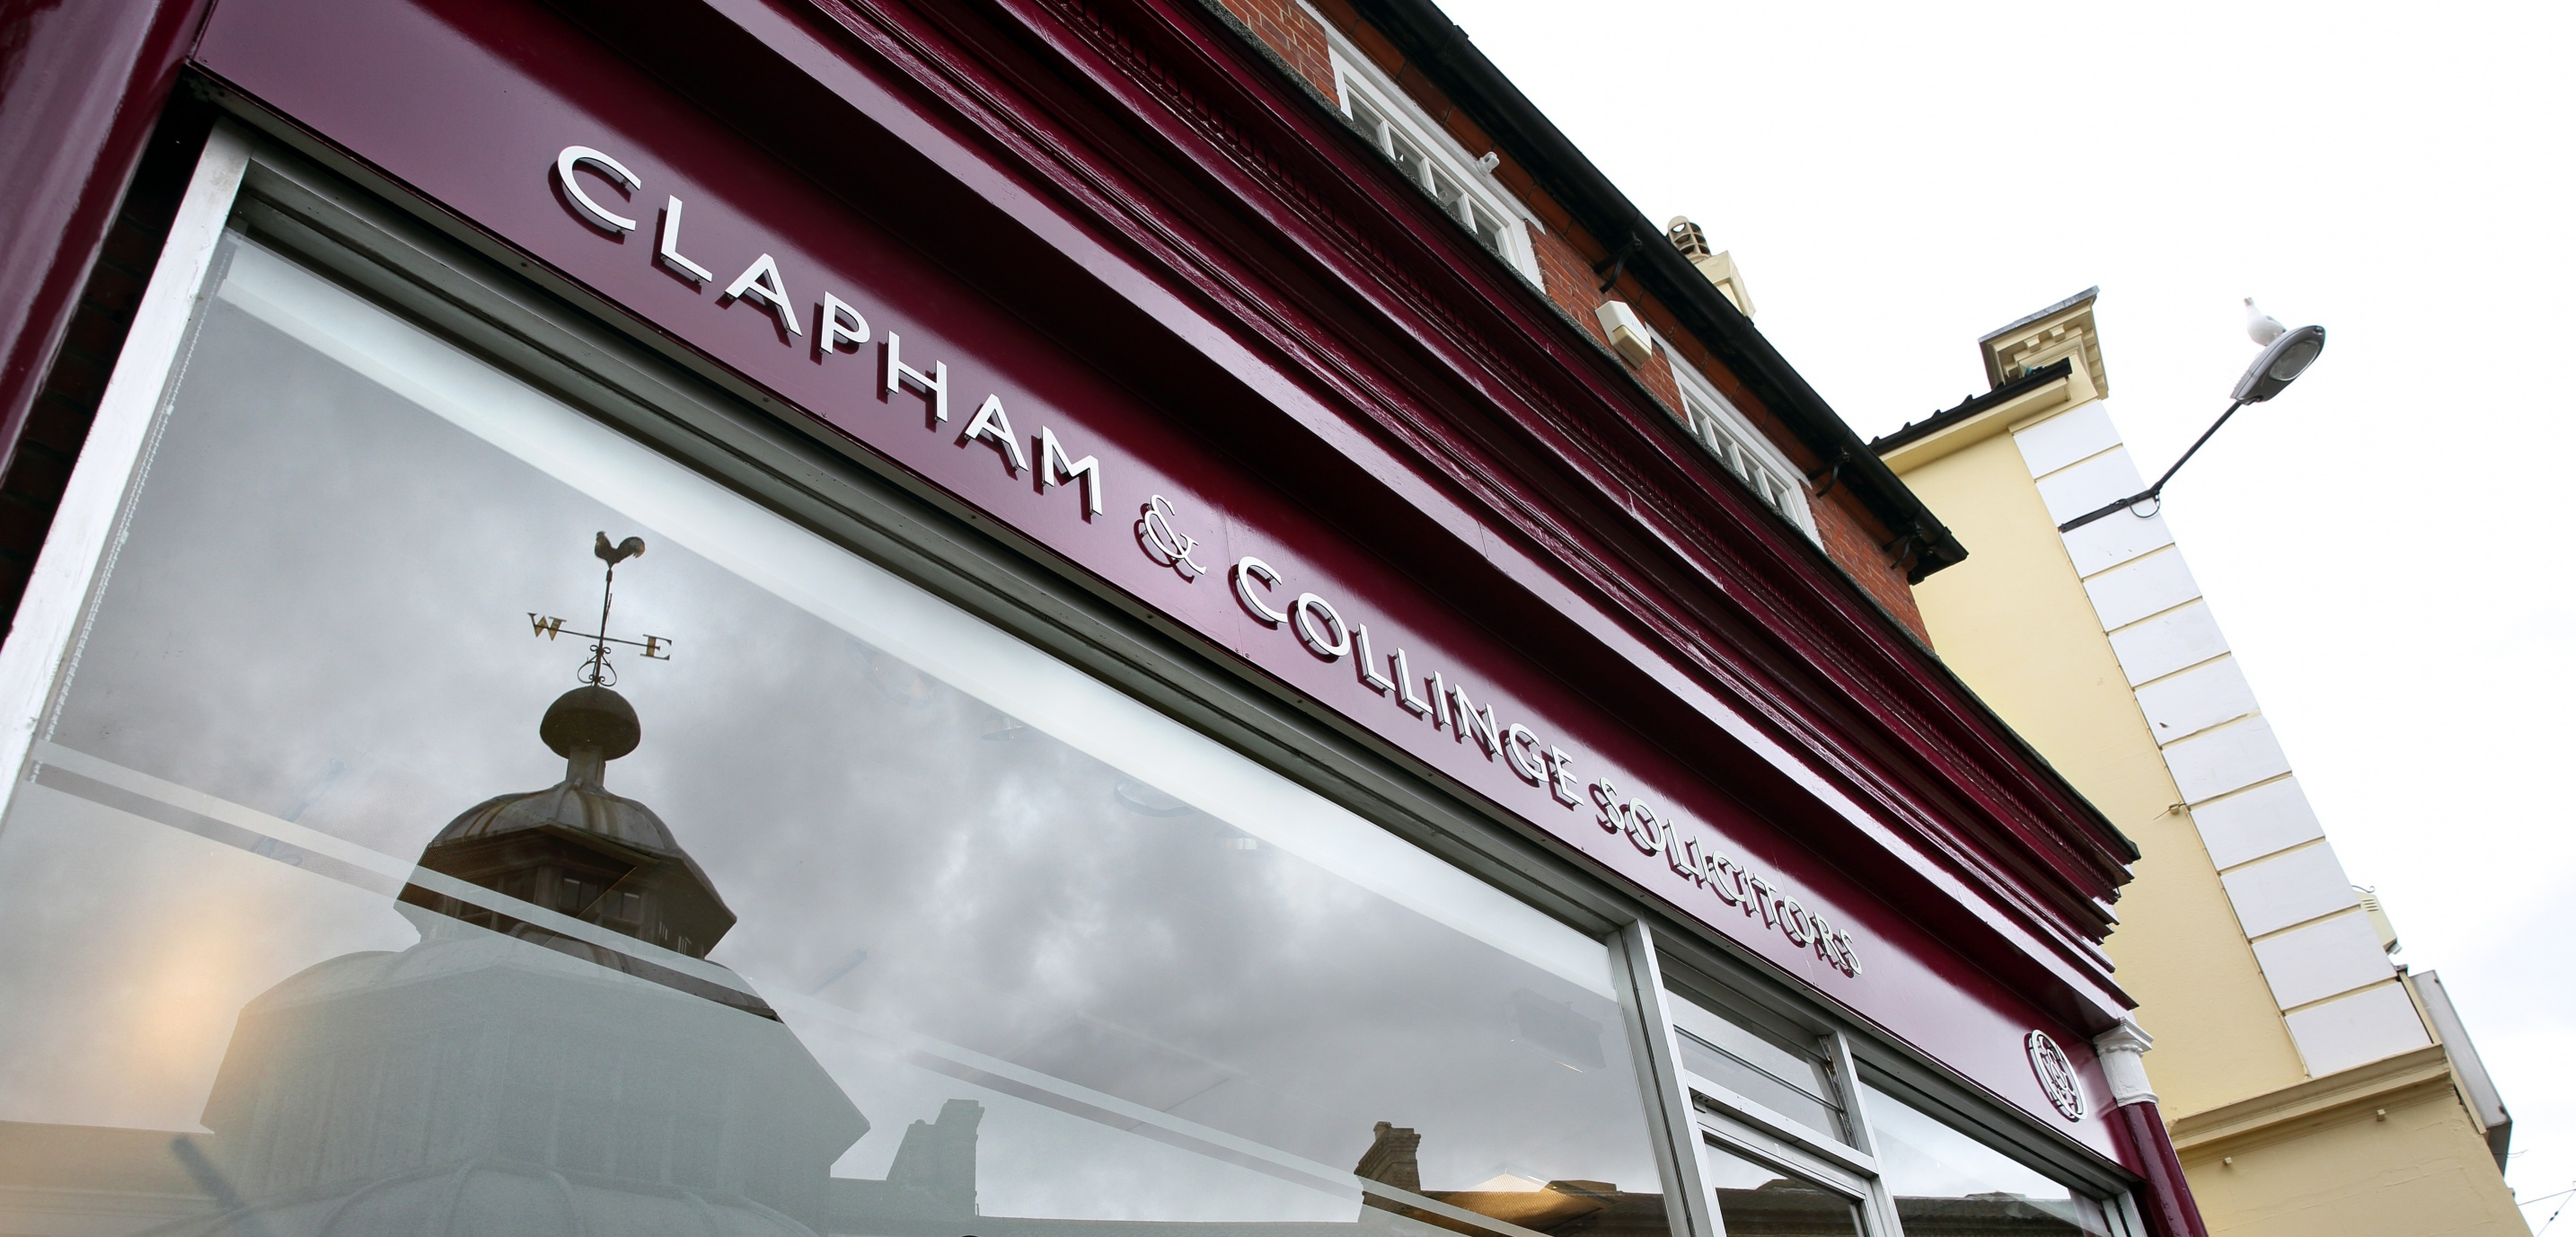 clapham-collinge-solicitors-north-walsham-branch-office